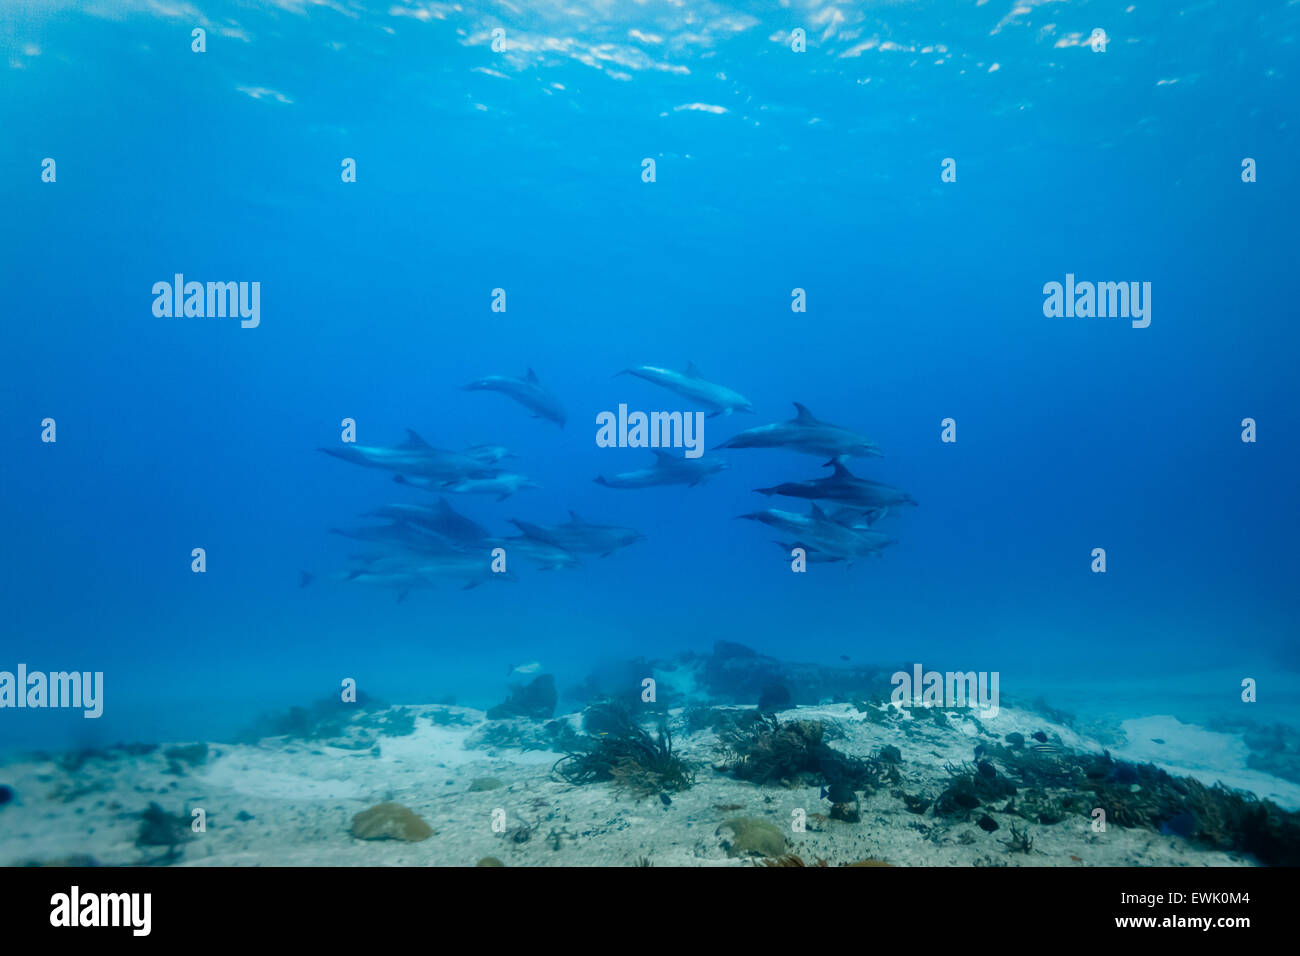 Pod of 14 wild common bottlenose dolphin (Tursiops truncatus) swimming underwater near coral reef - Stock Image